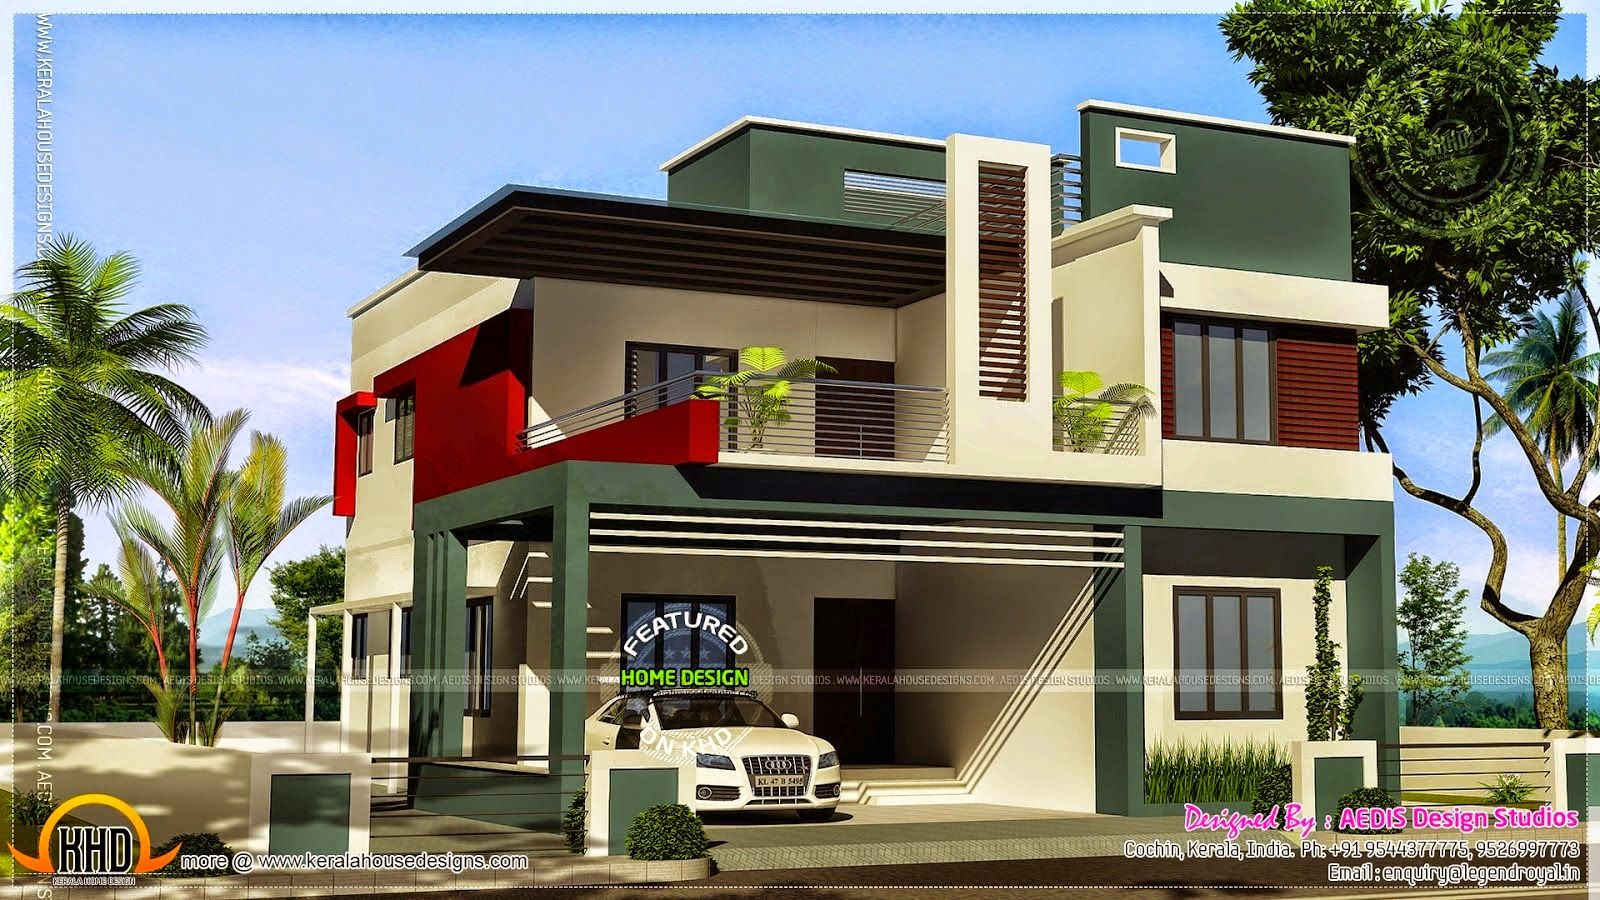 Contemporary home design two floor modern bungalow house houses living room also top designs ever built pinterest rh